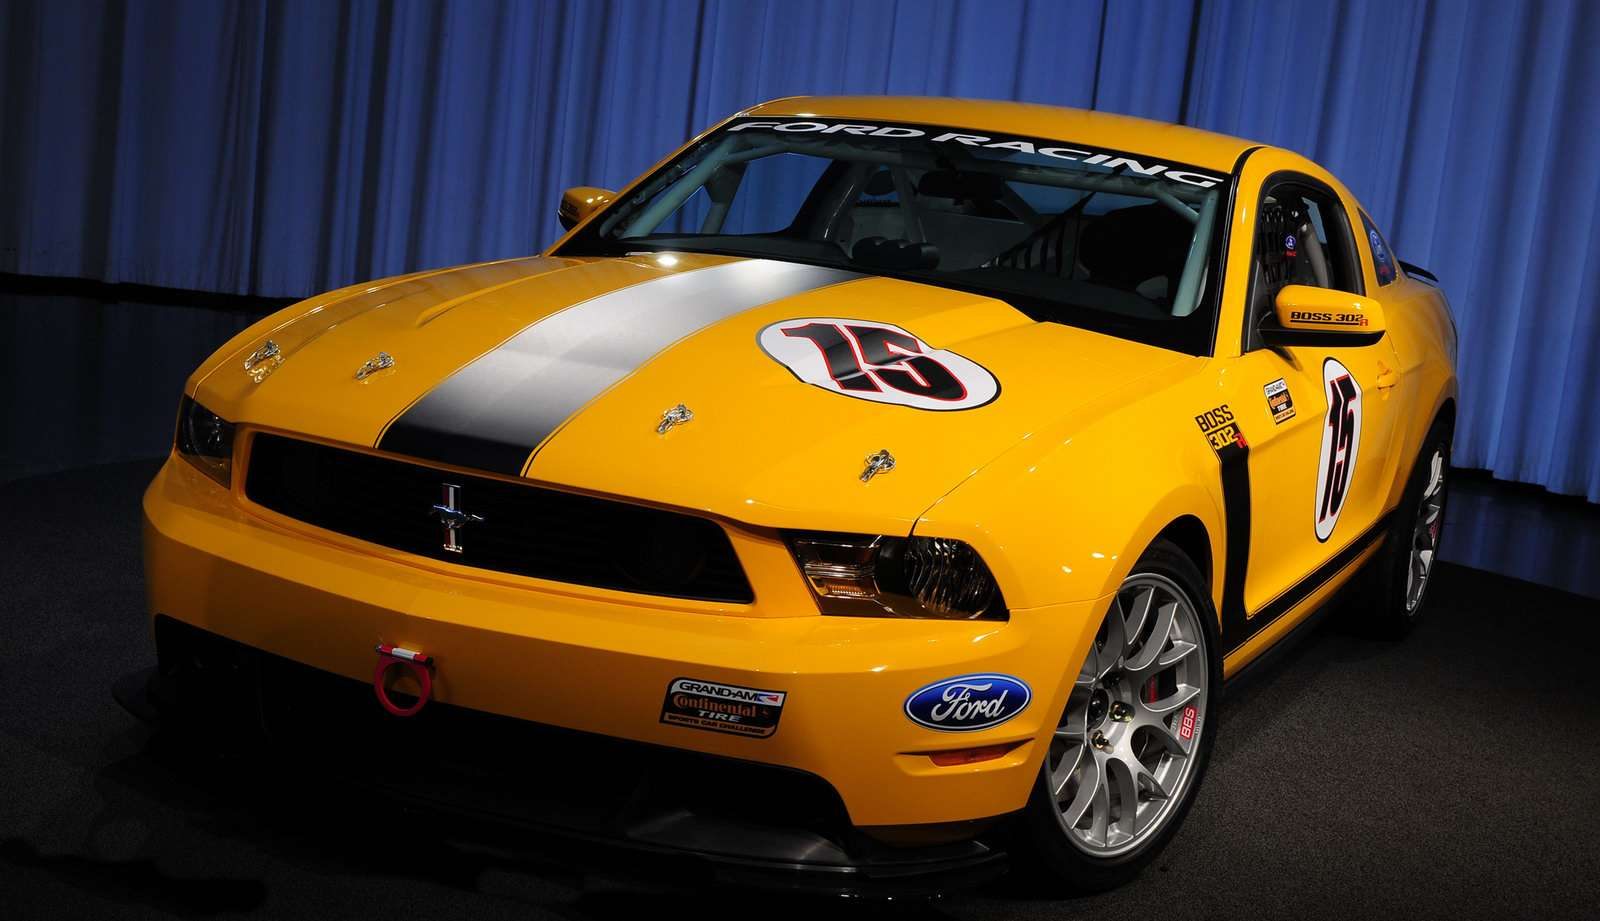 Ford Mustang Boss 302R 2009